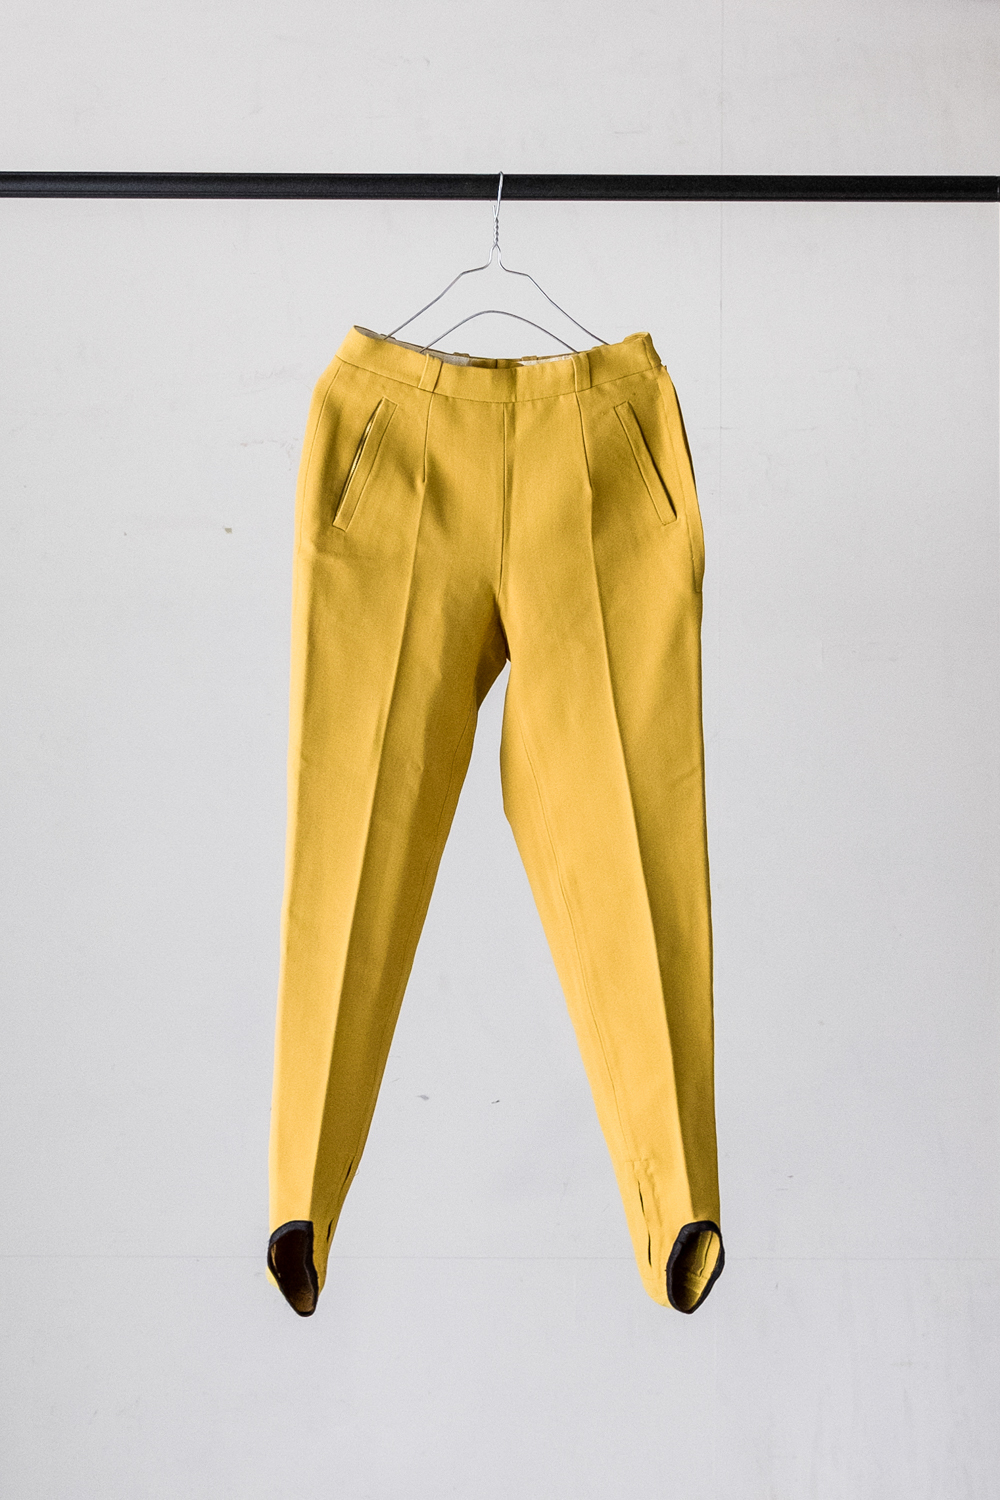 80's Ski Pants / Yellow Color